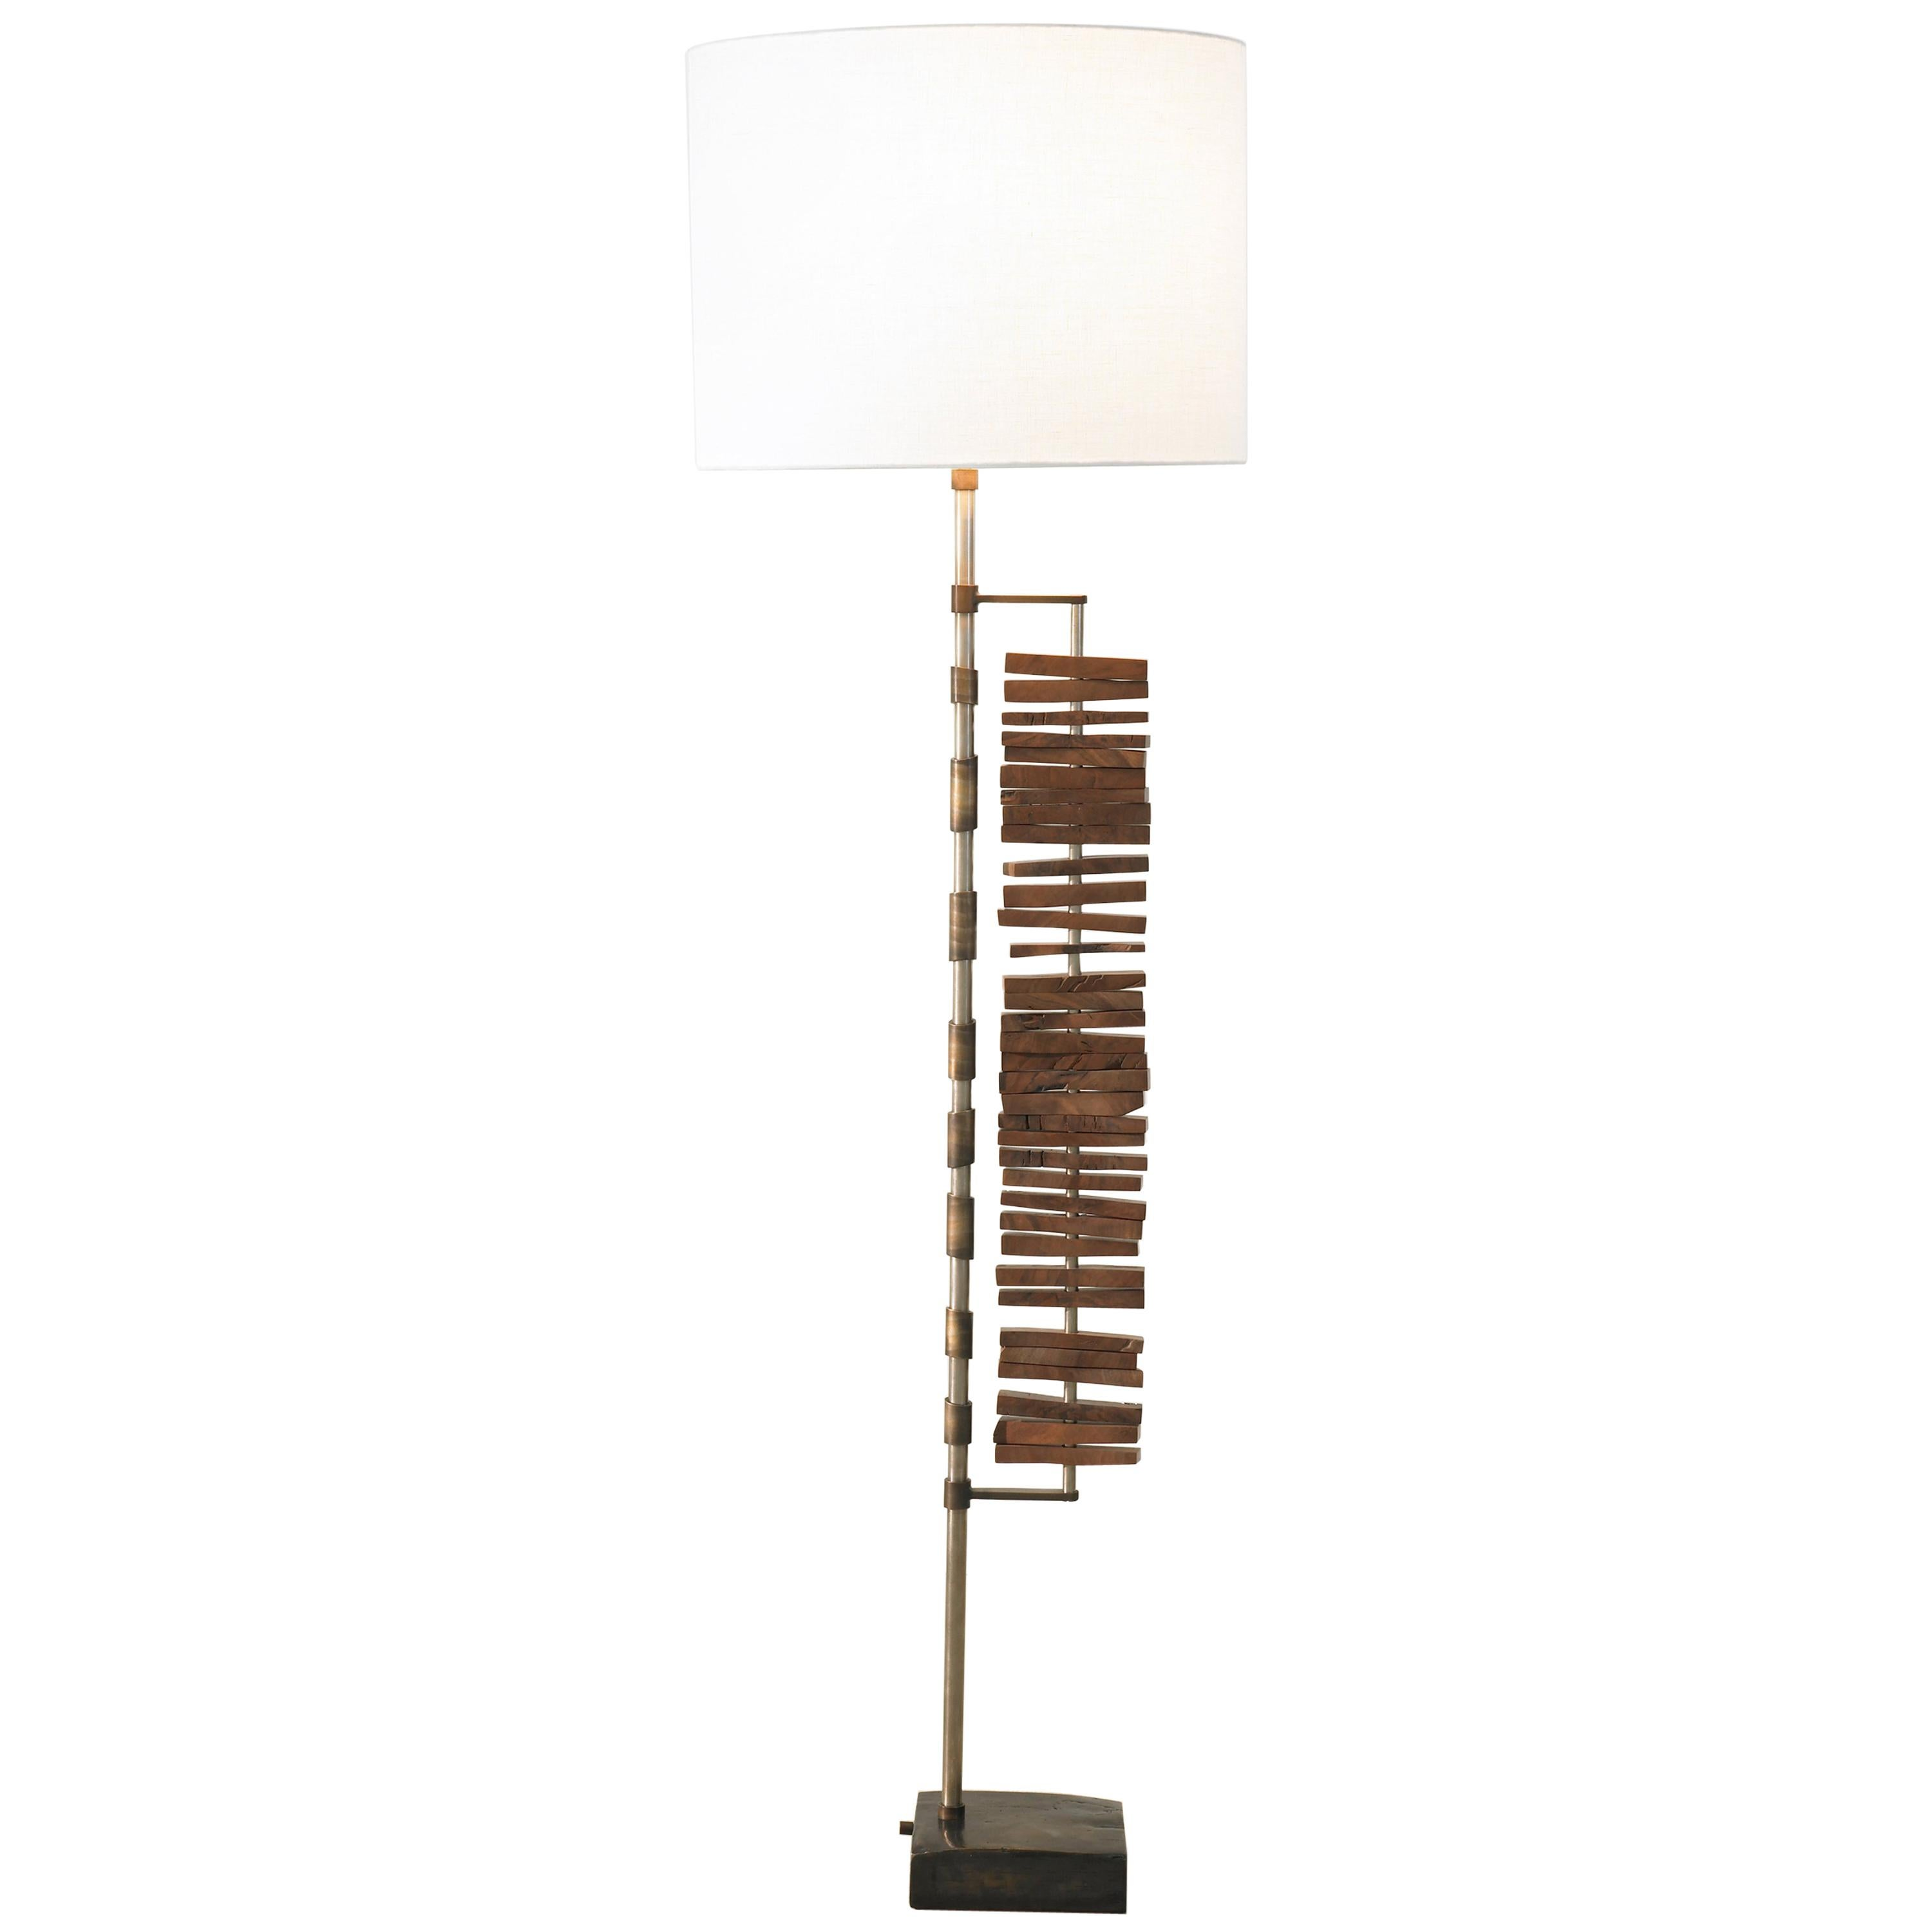 Sculptural Floor Lamp Walnut Bronze and Nickel Plated Finish by Carbonell Design